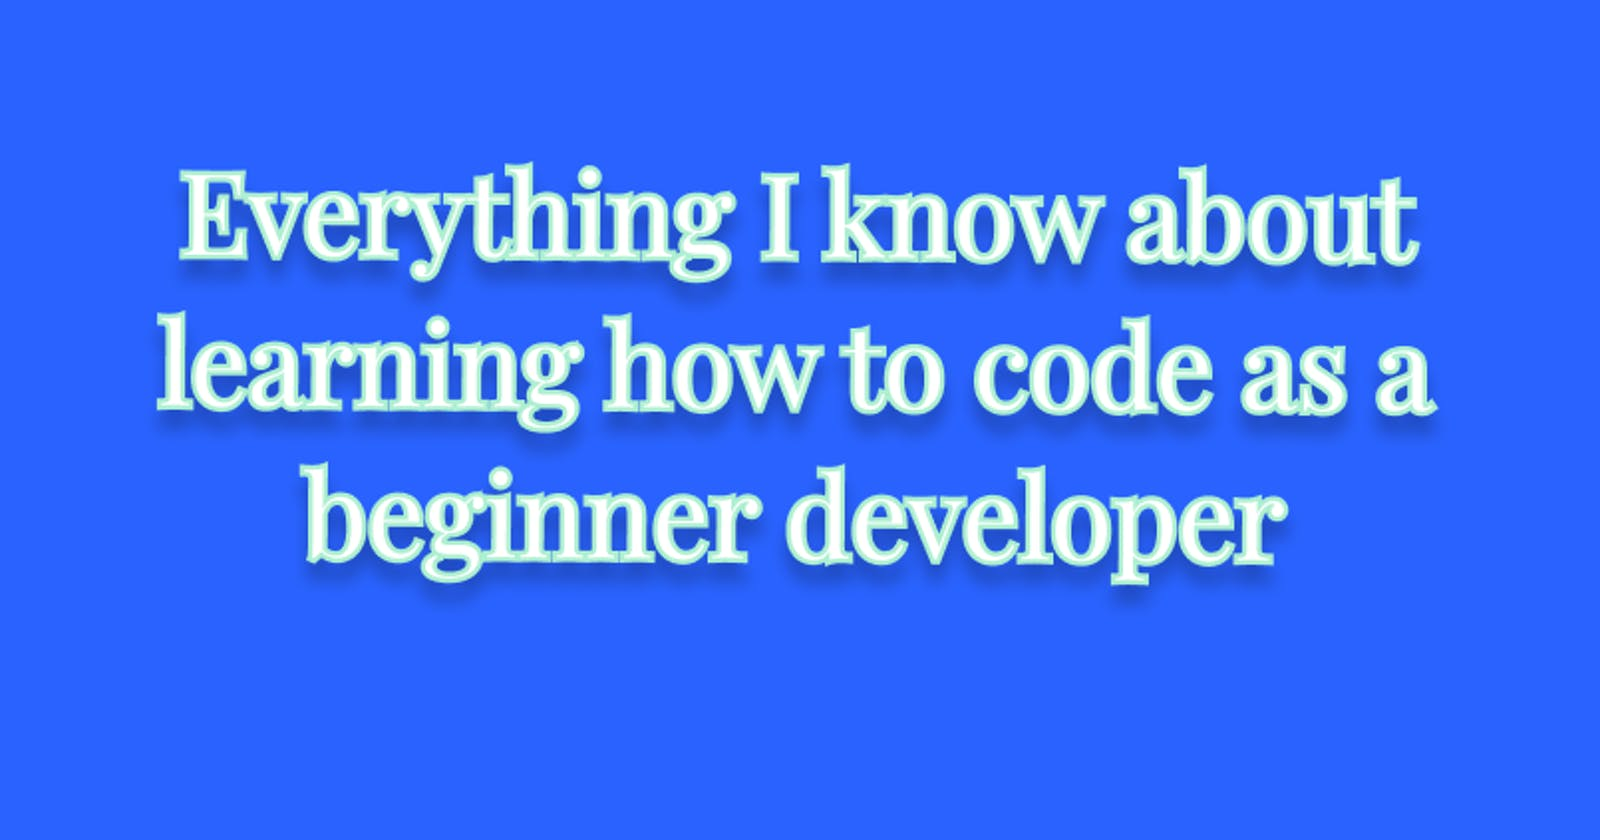 Everything I know about learning how to code as a beginner developer